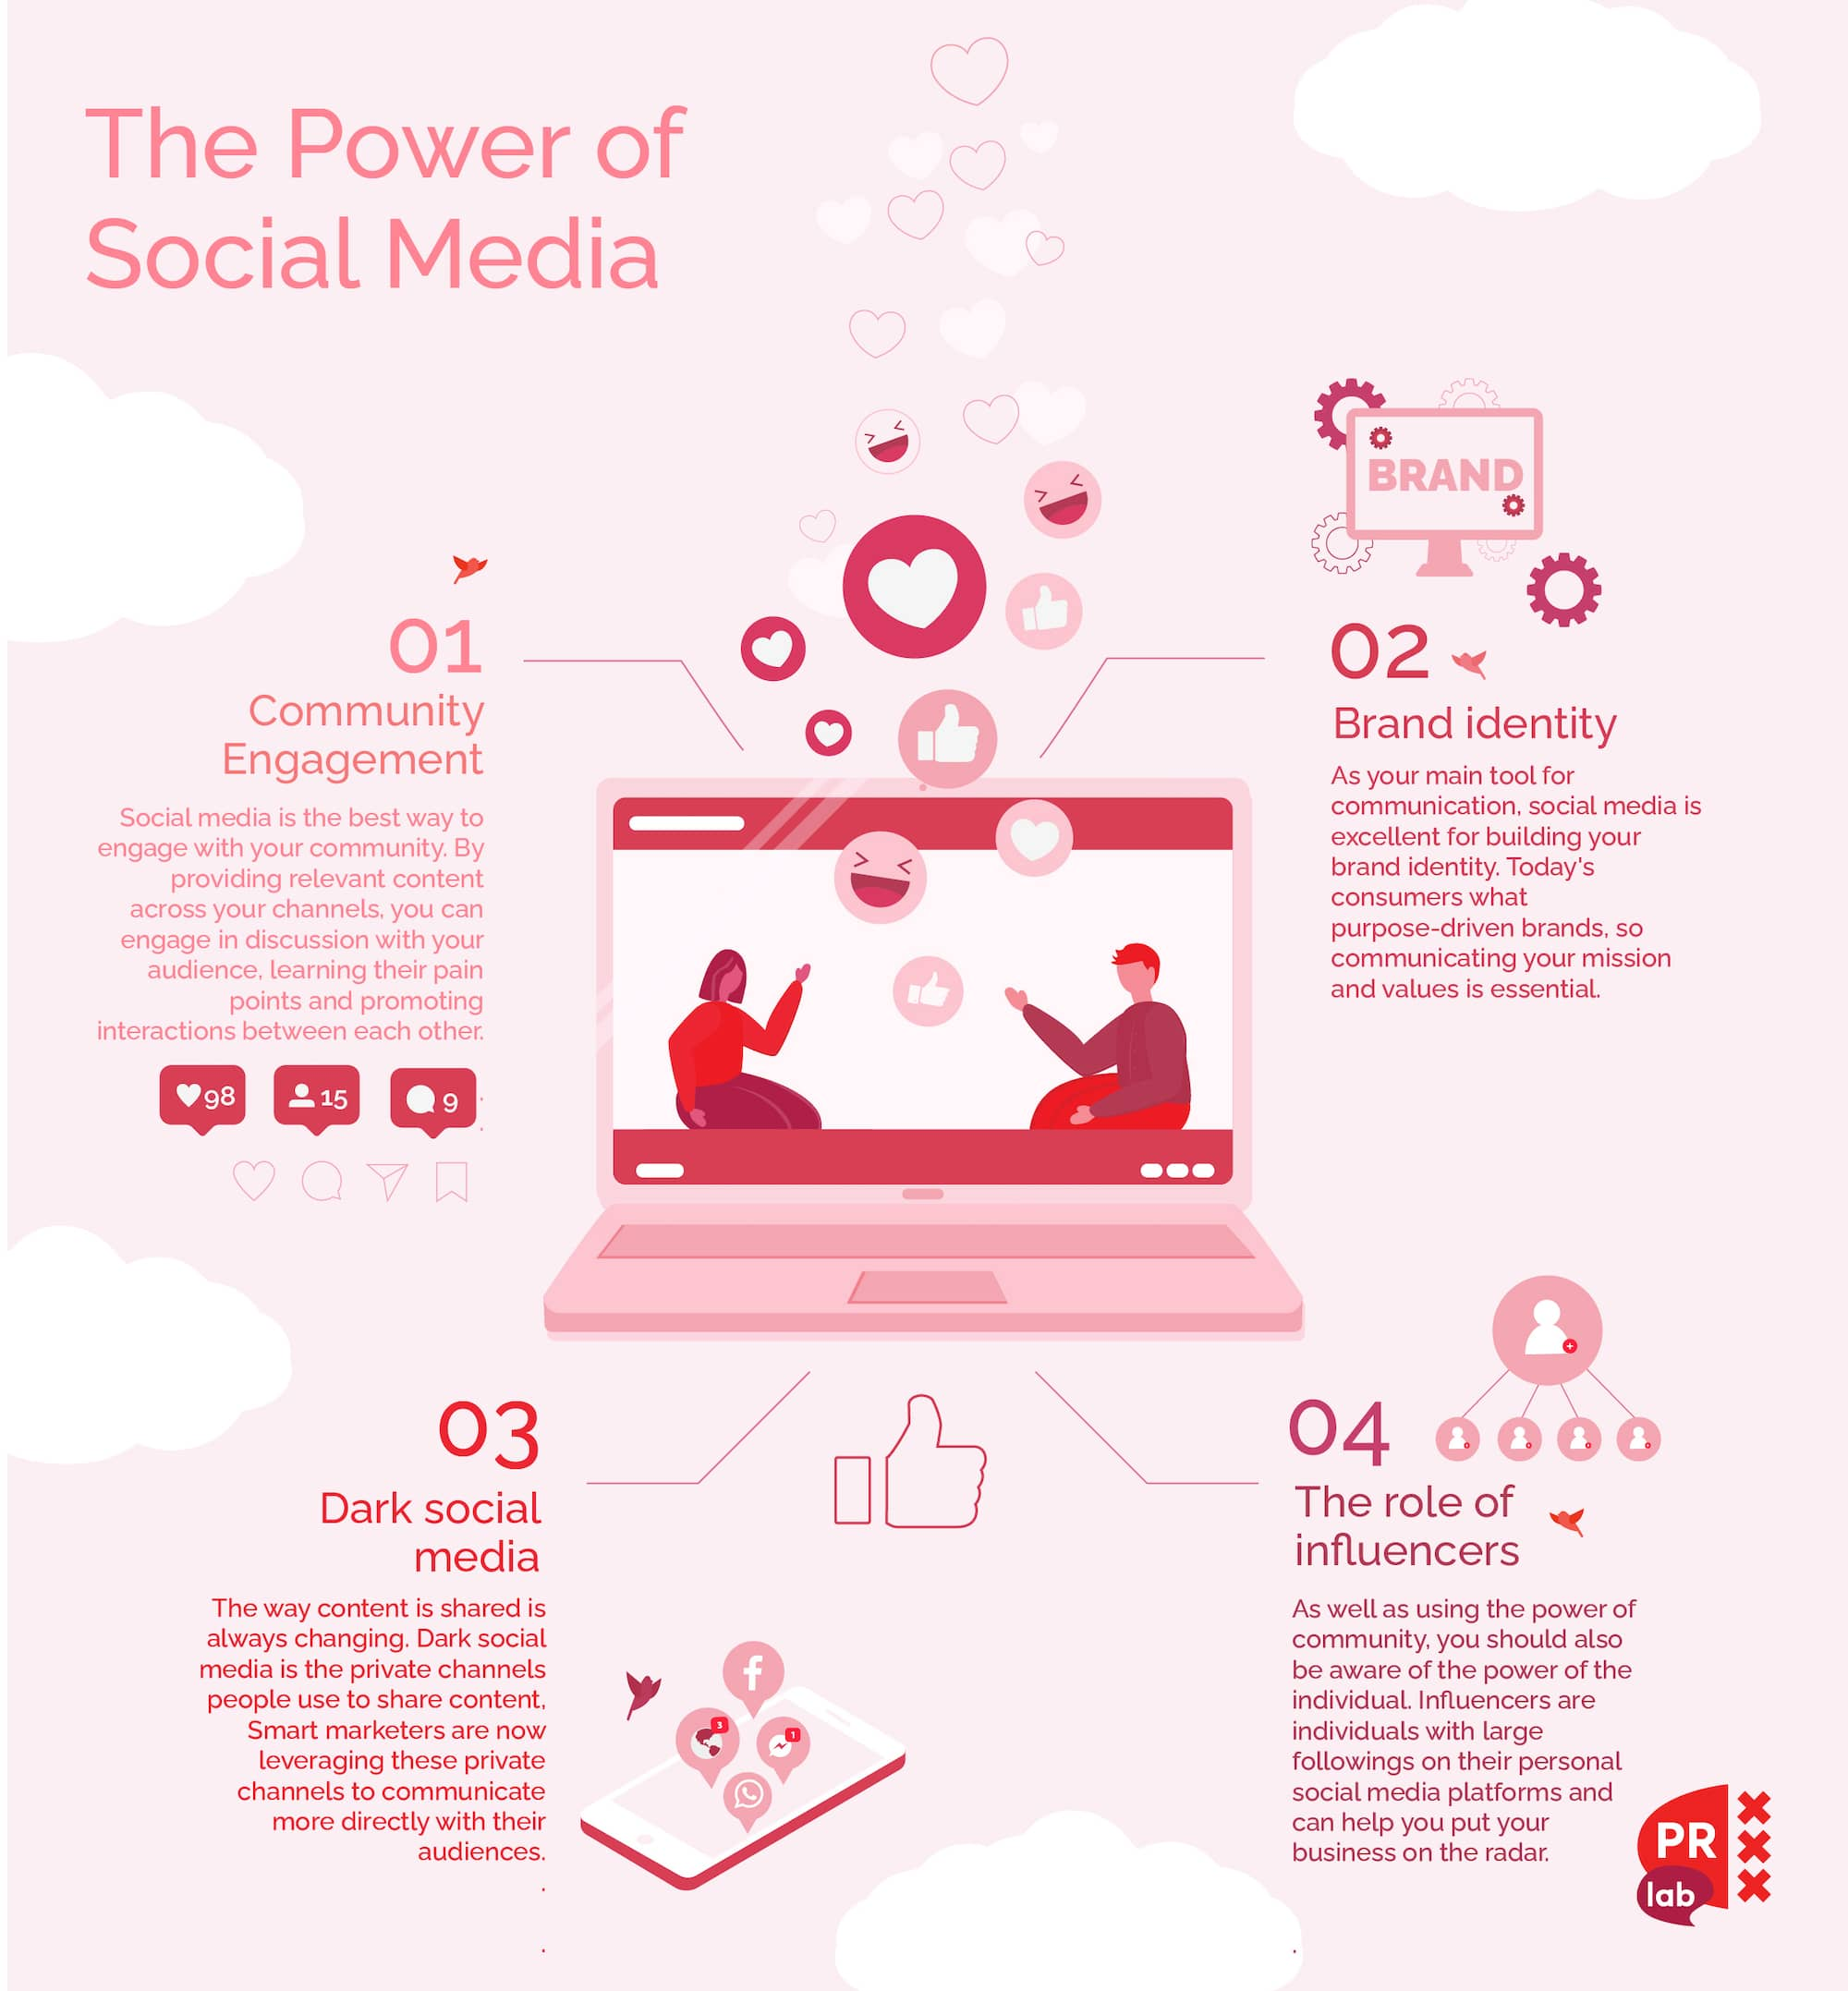 Infographic that illustrates the power of social media in four points.